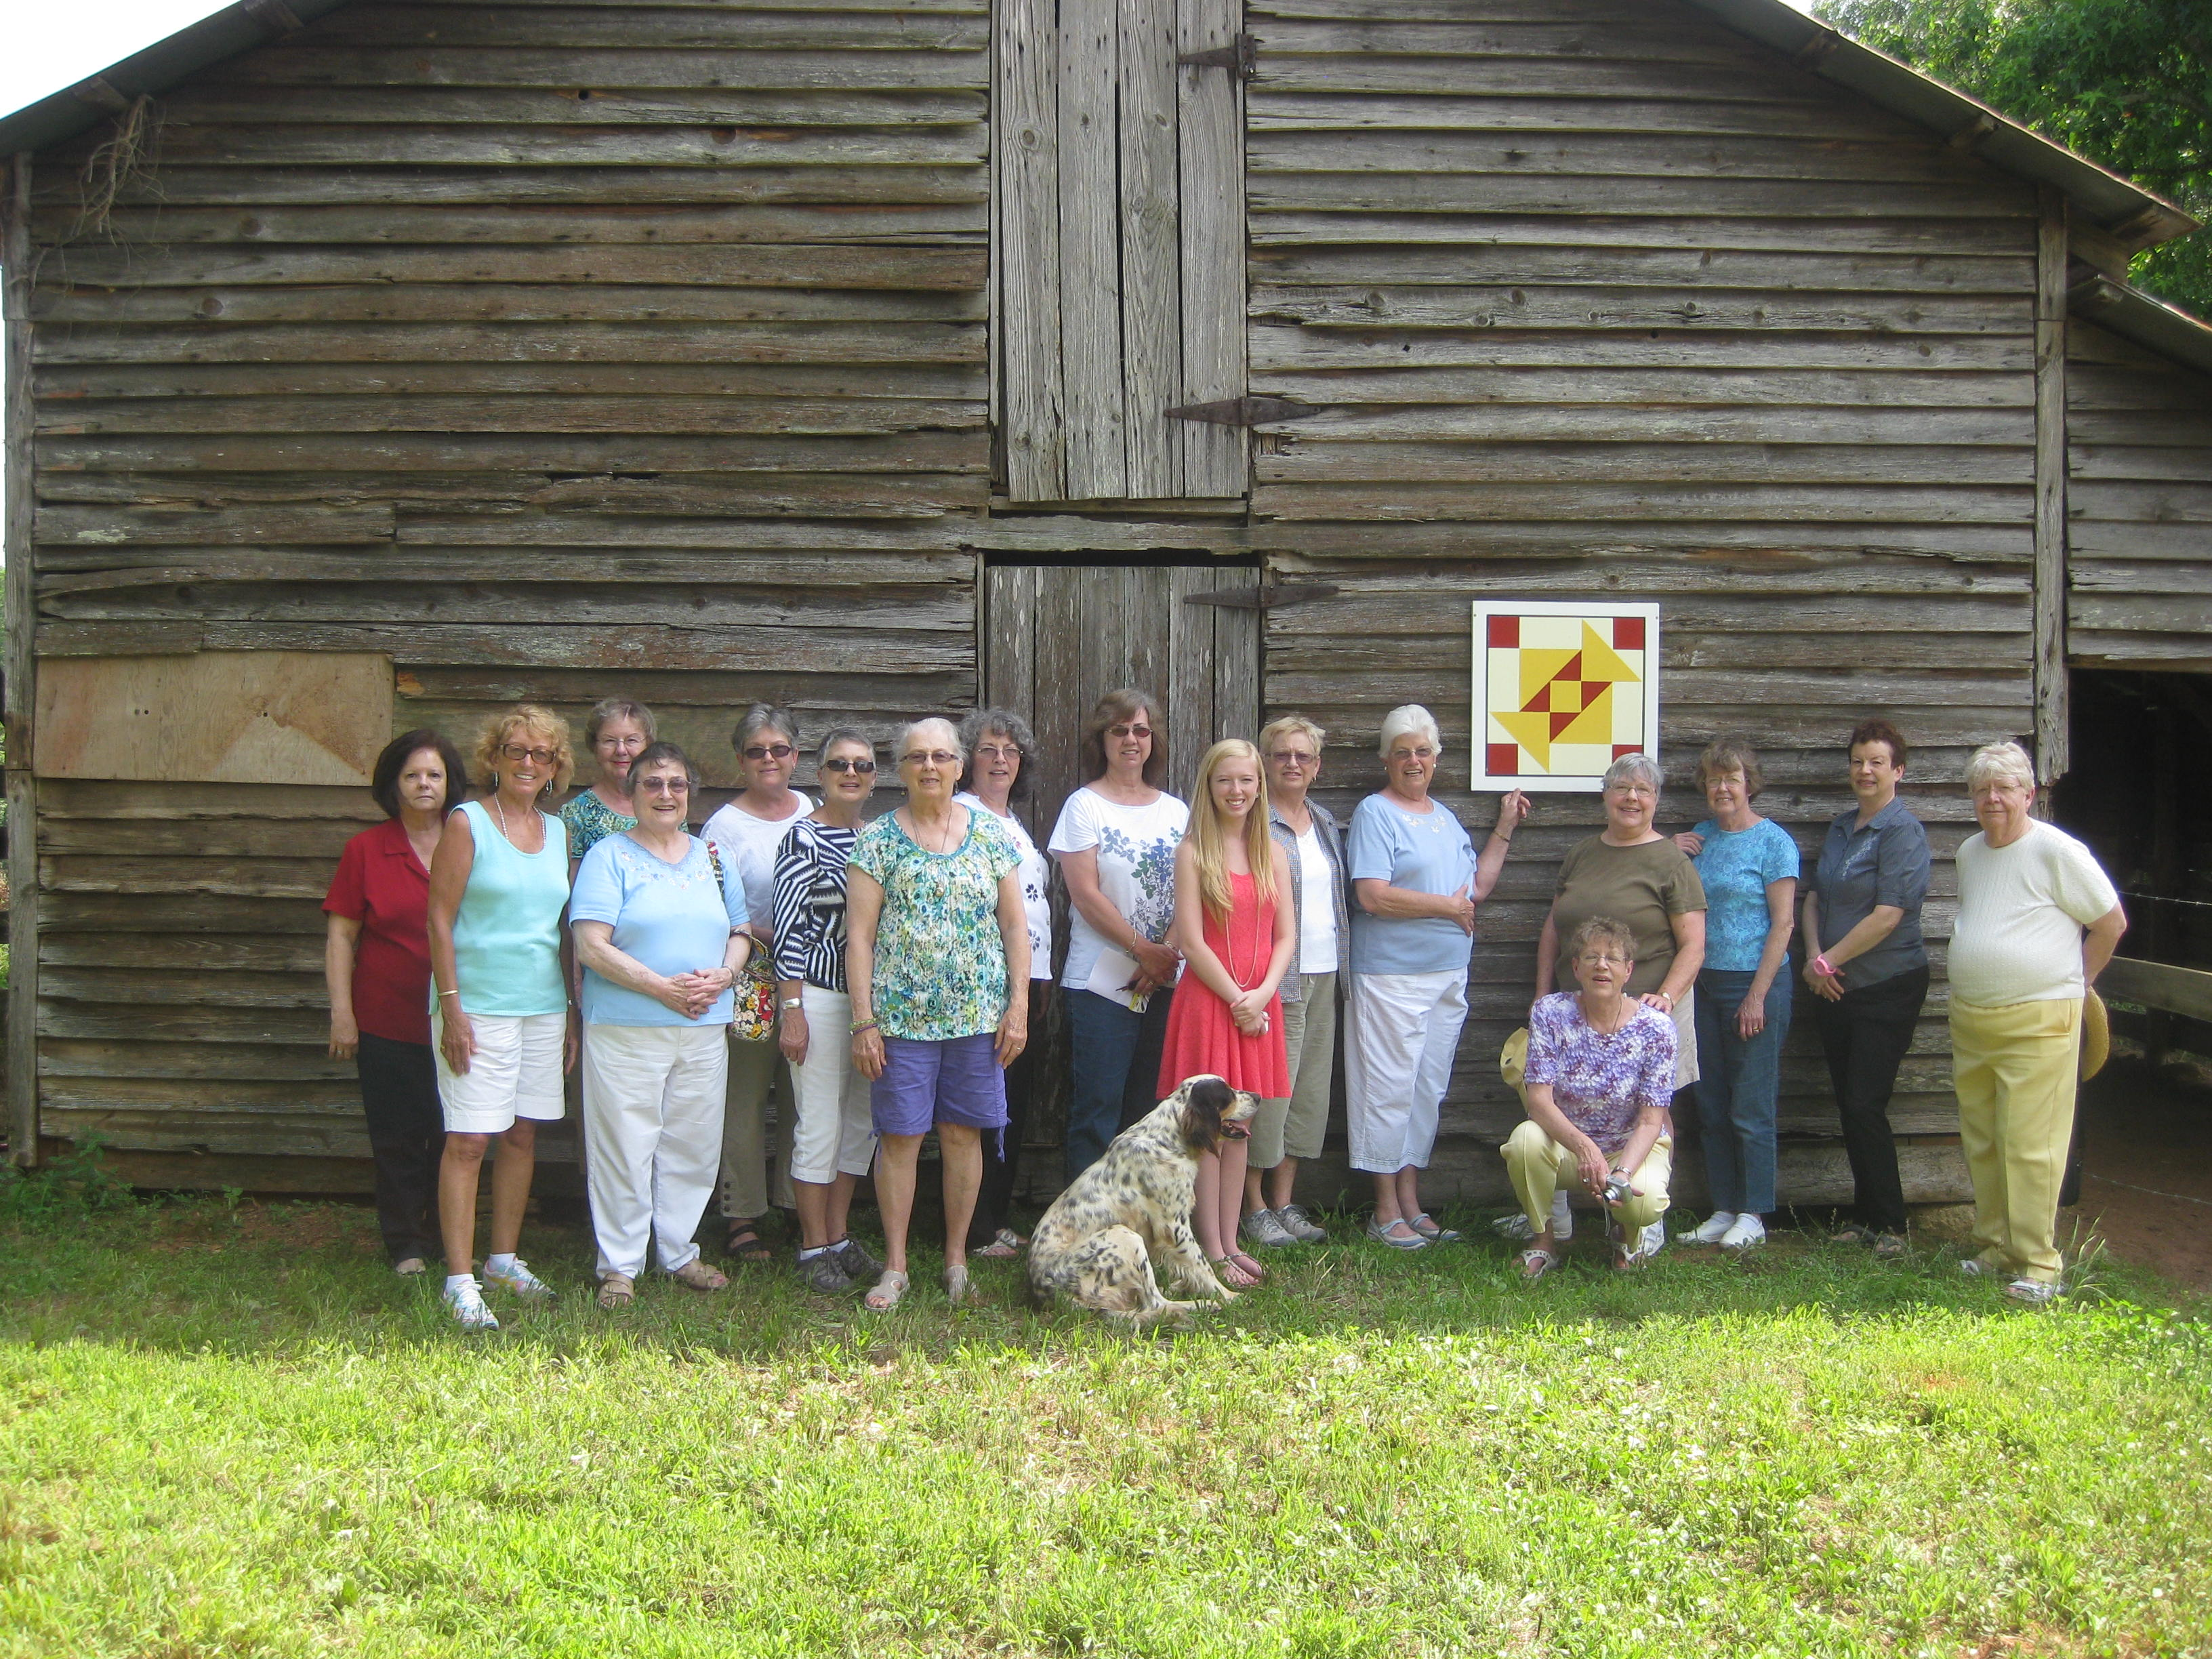 A group outside a historic barn on the Hart County Quilt Trail